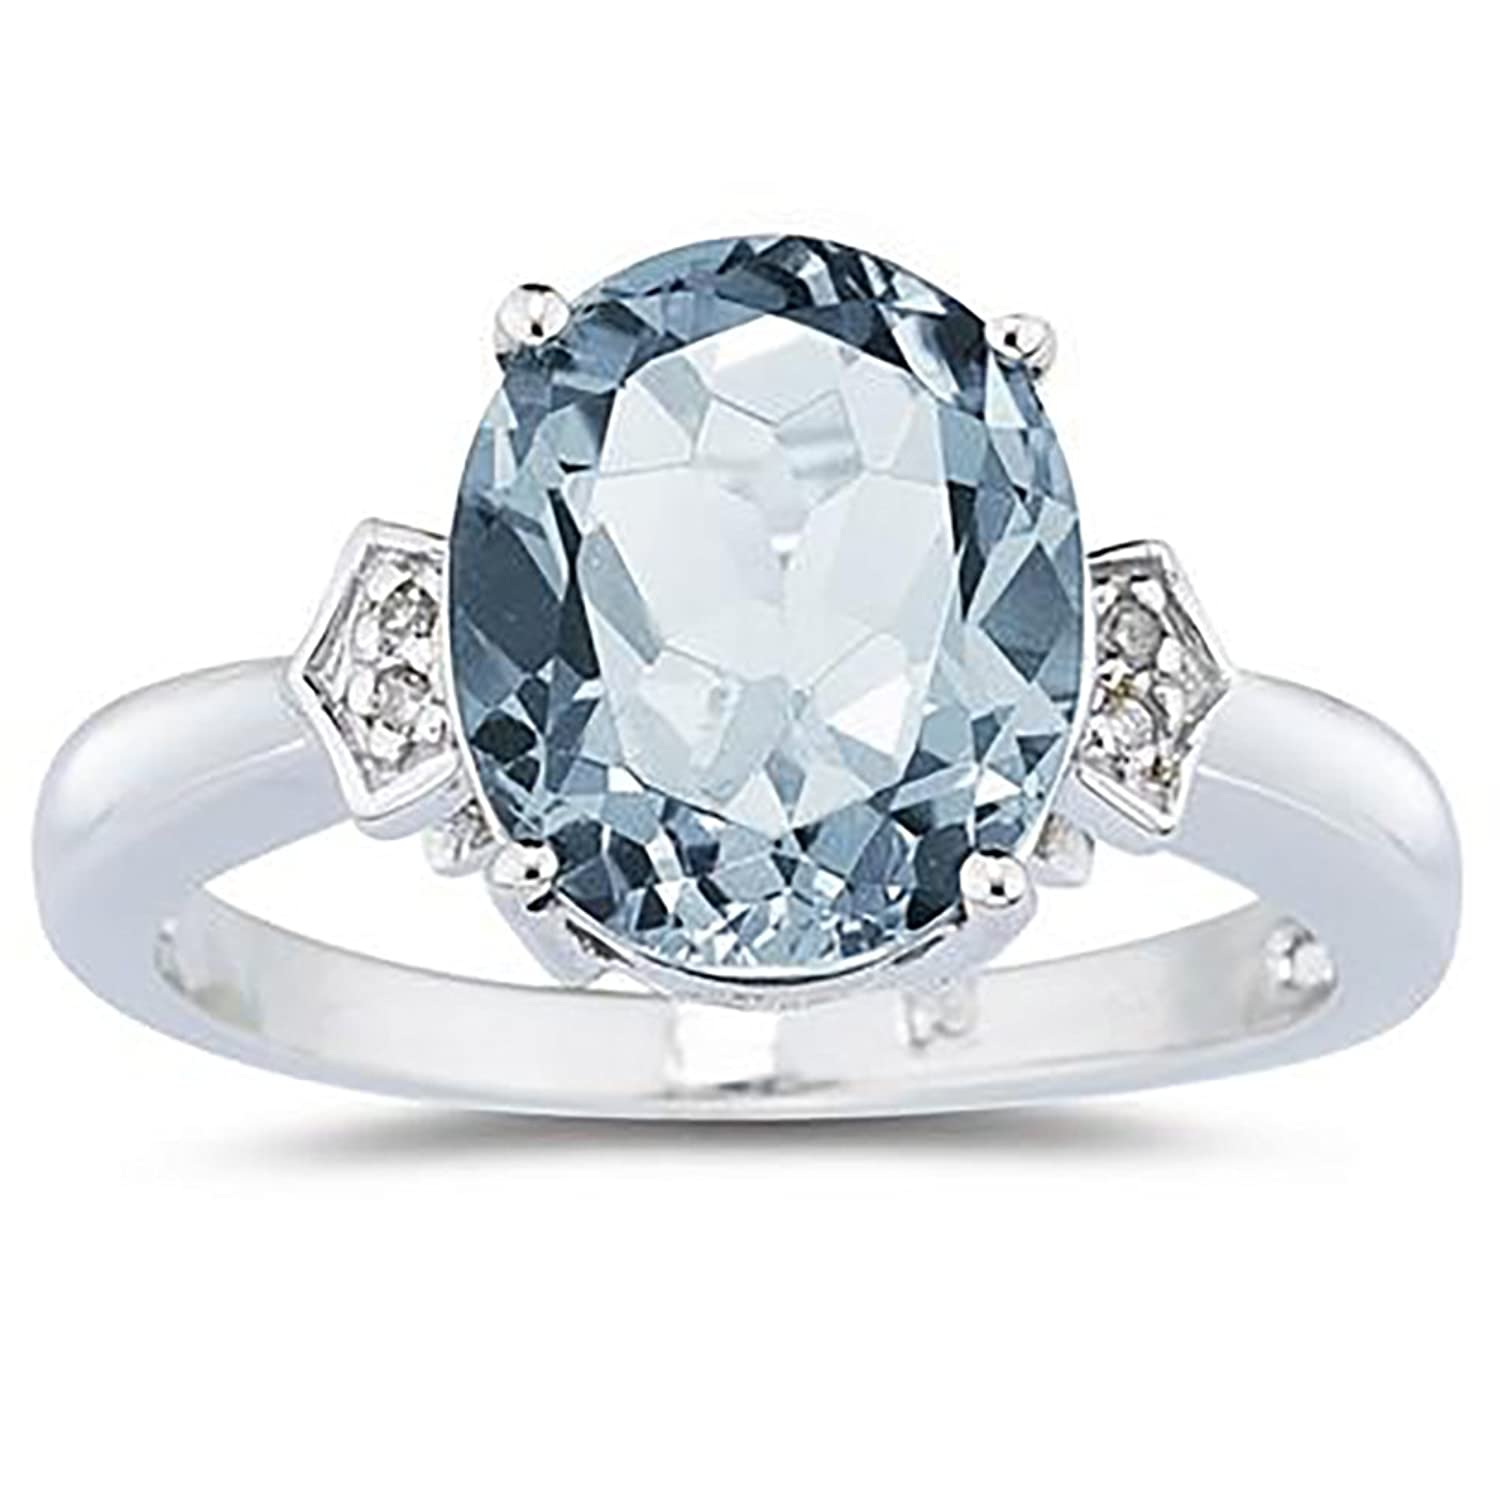 amazoncom aquamarine diamond ring in 10k white gold jewelry - Oval Wedding Rings